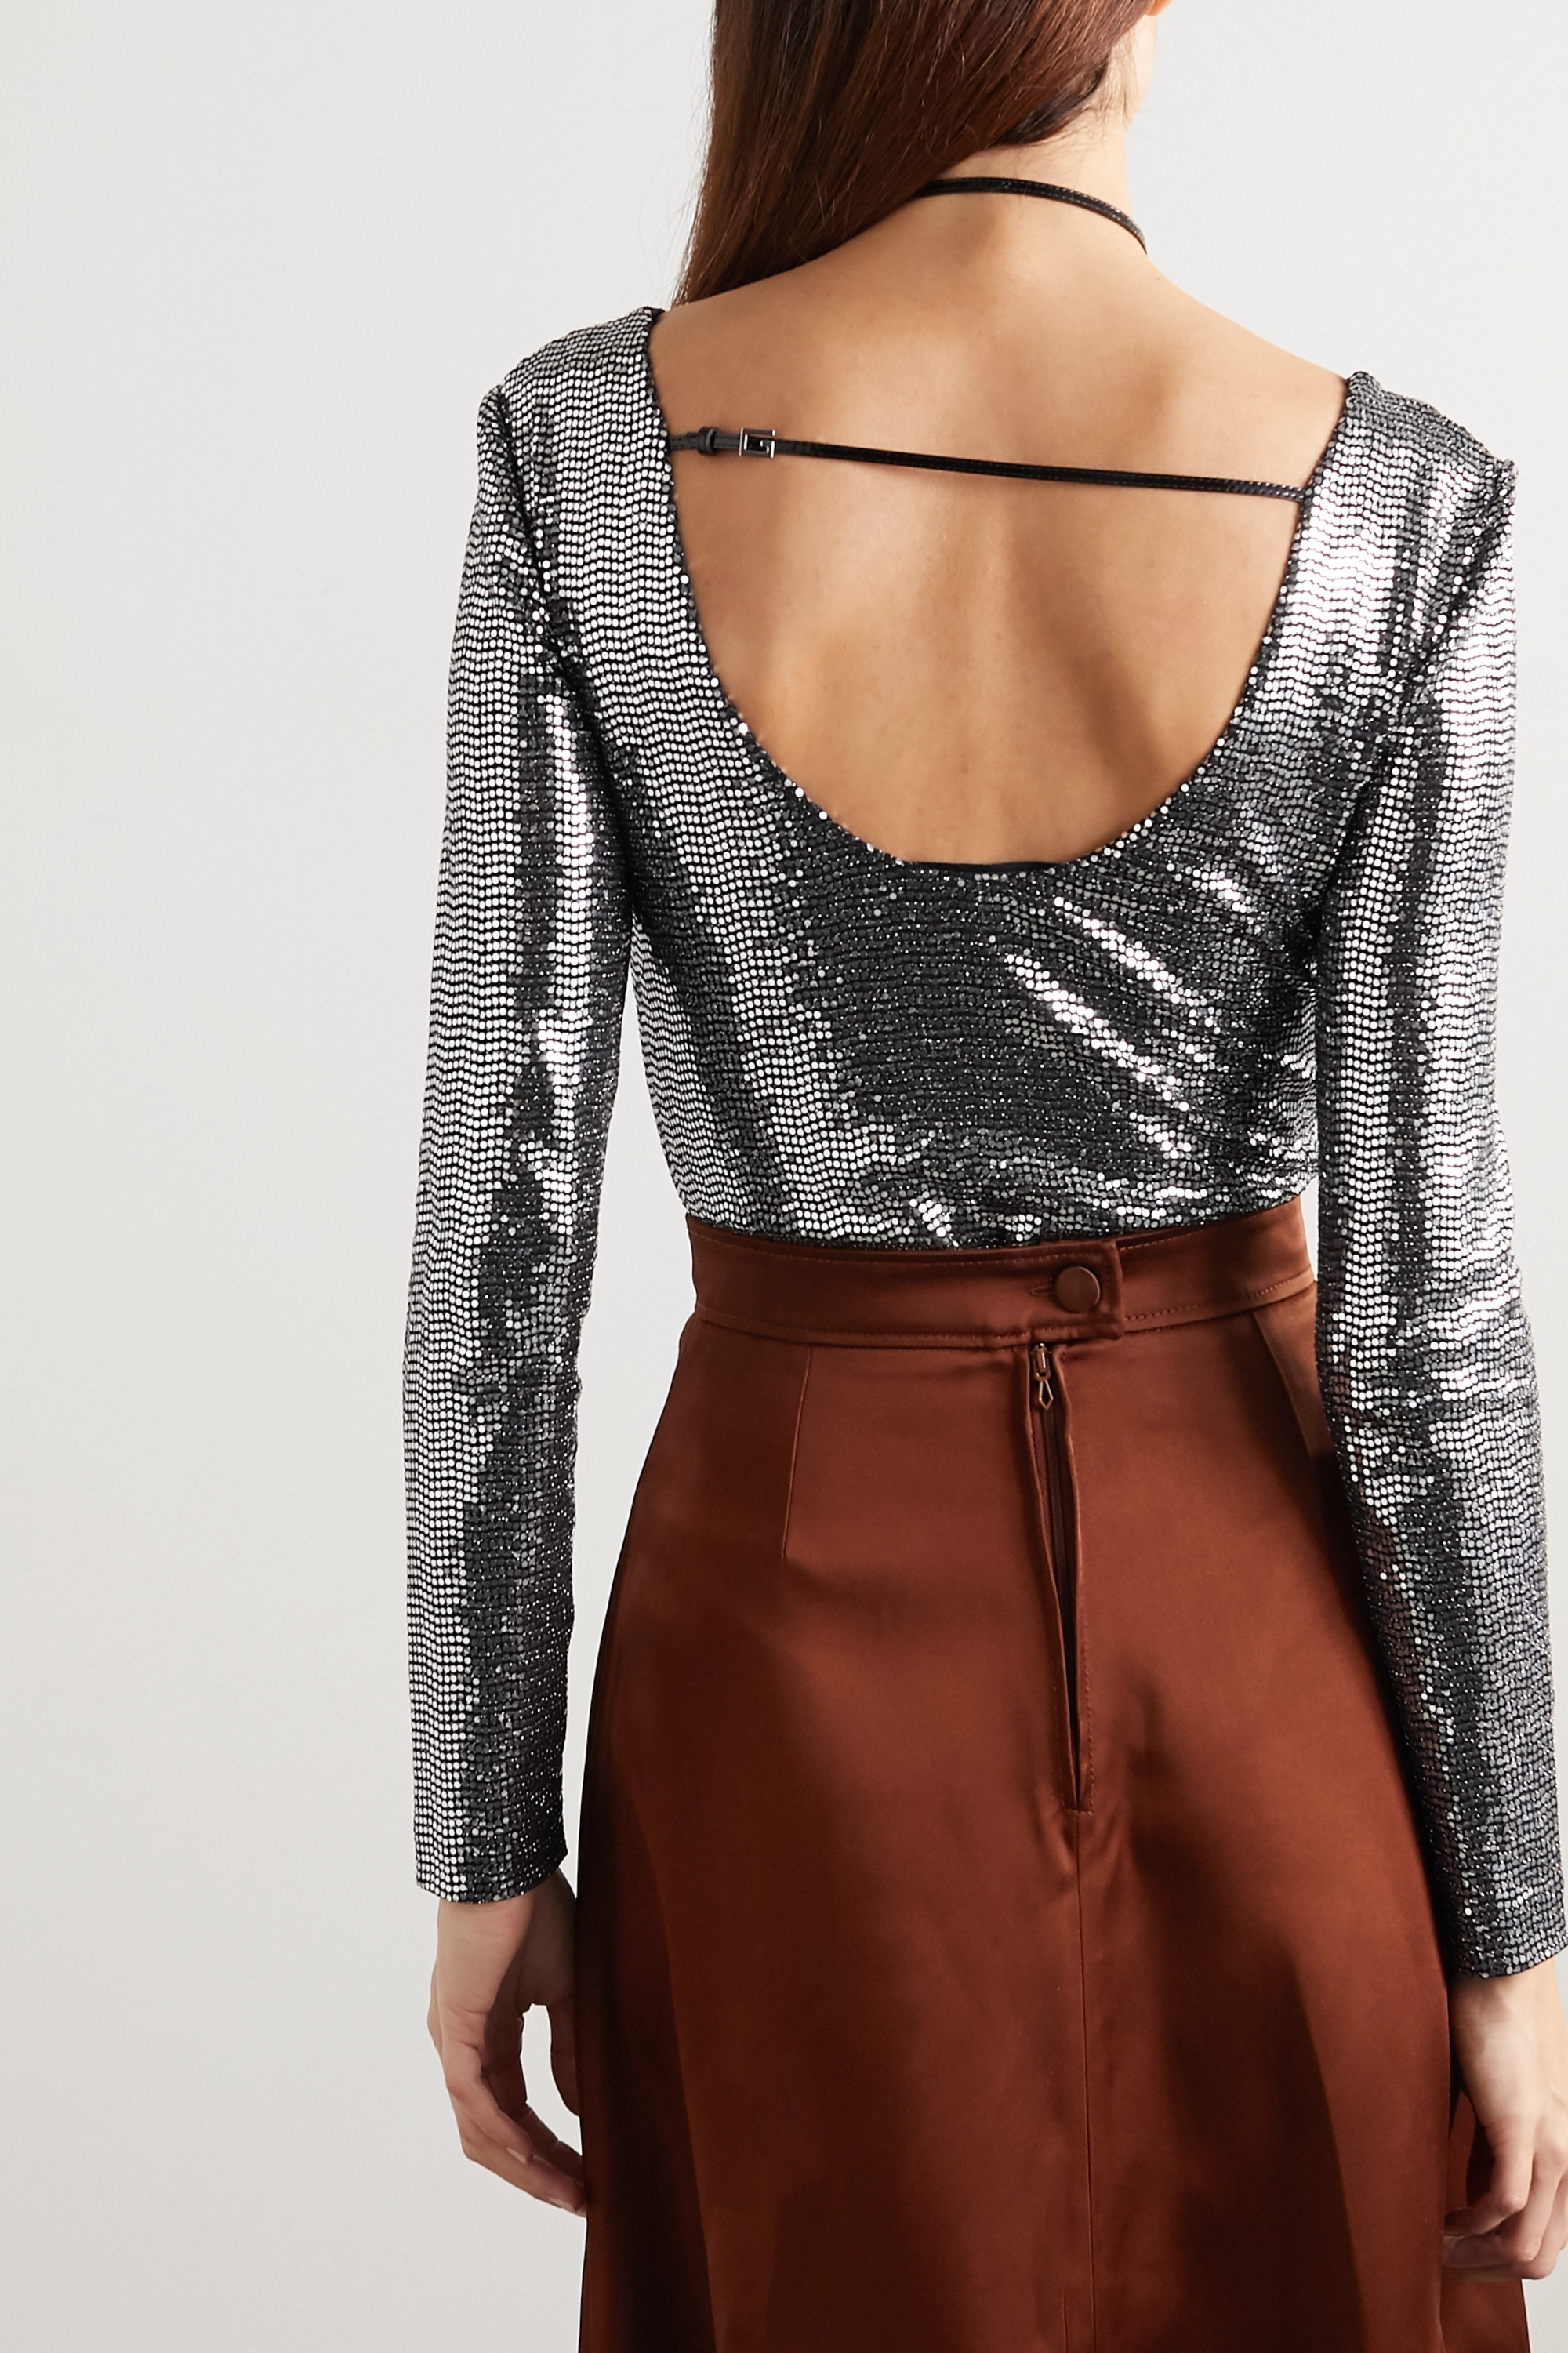 Gucci Patent leather-trimmed sequined stretch-jersey bodysuit